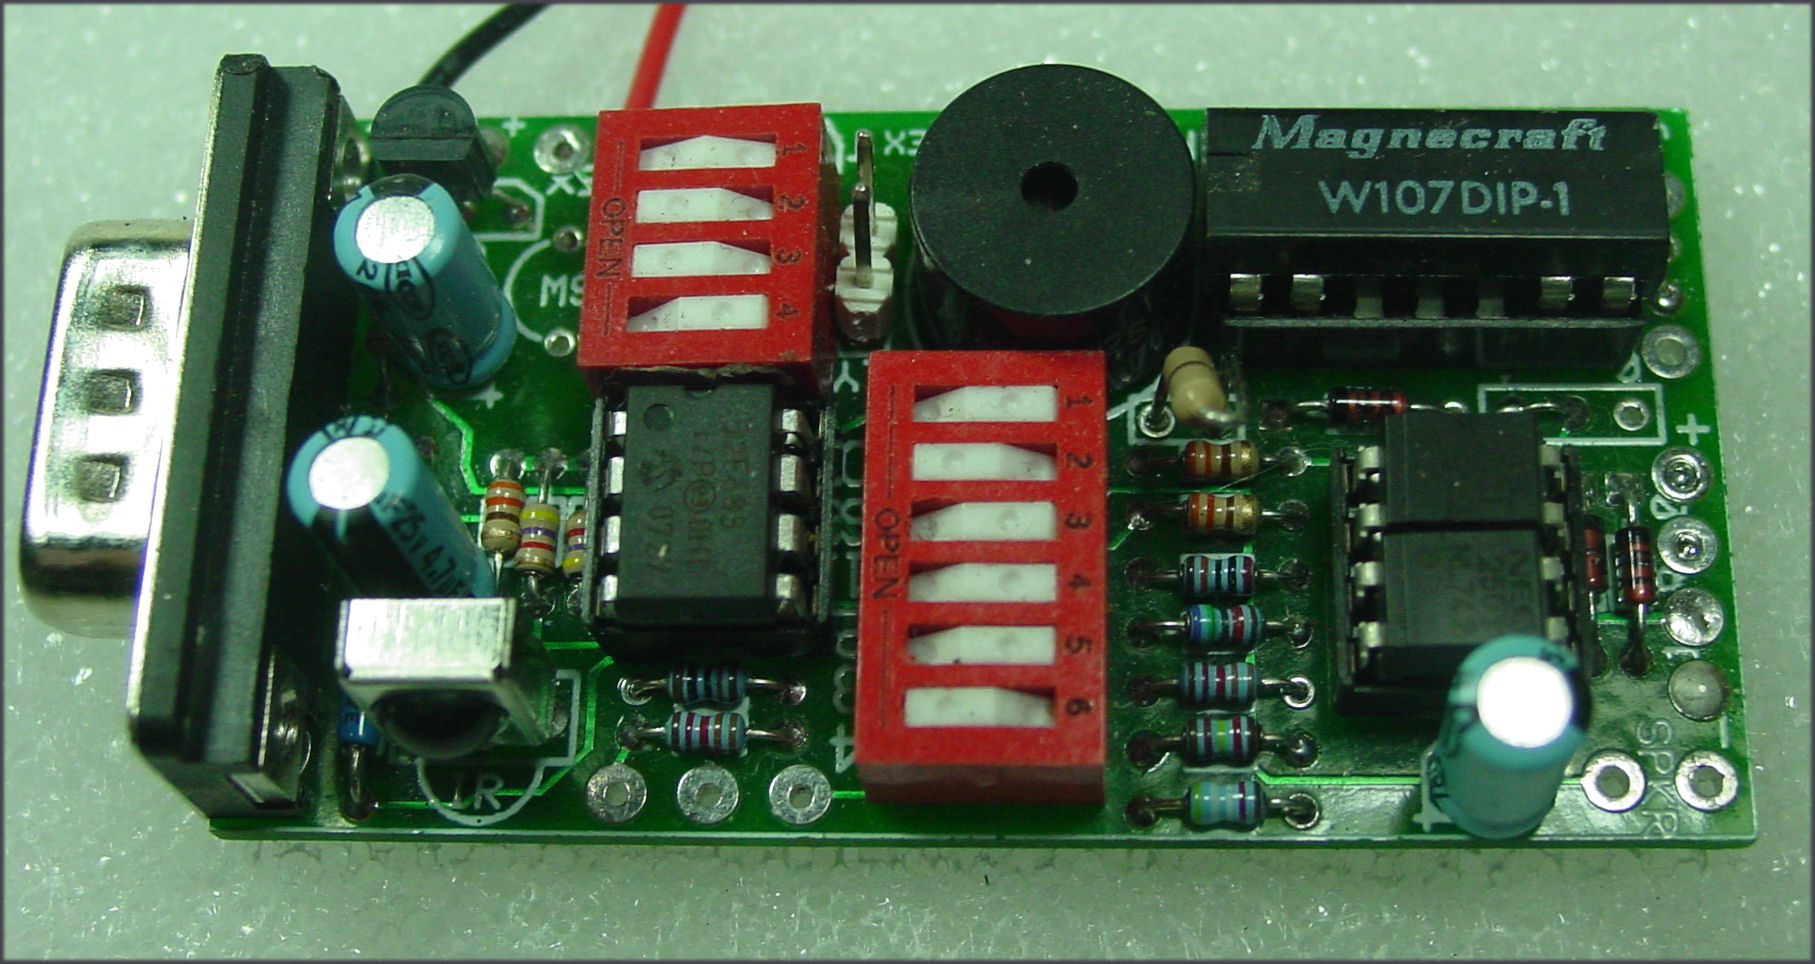 Qrpme Picaxe Serial Cable Wiring In Addition Pc Plc Programming Hatchet Board